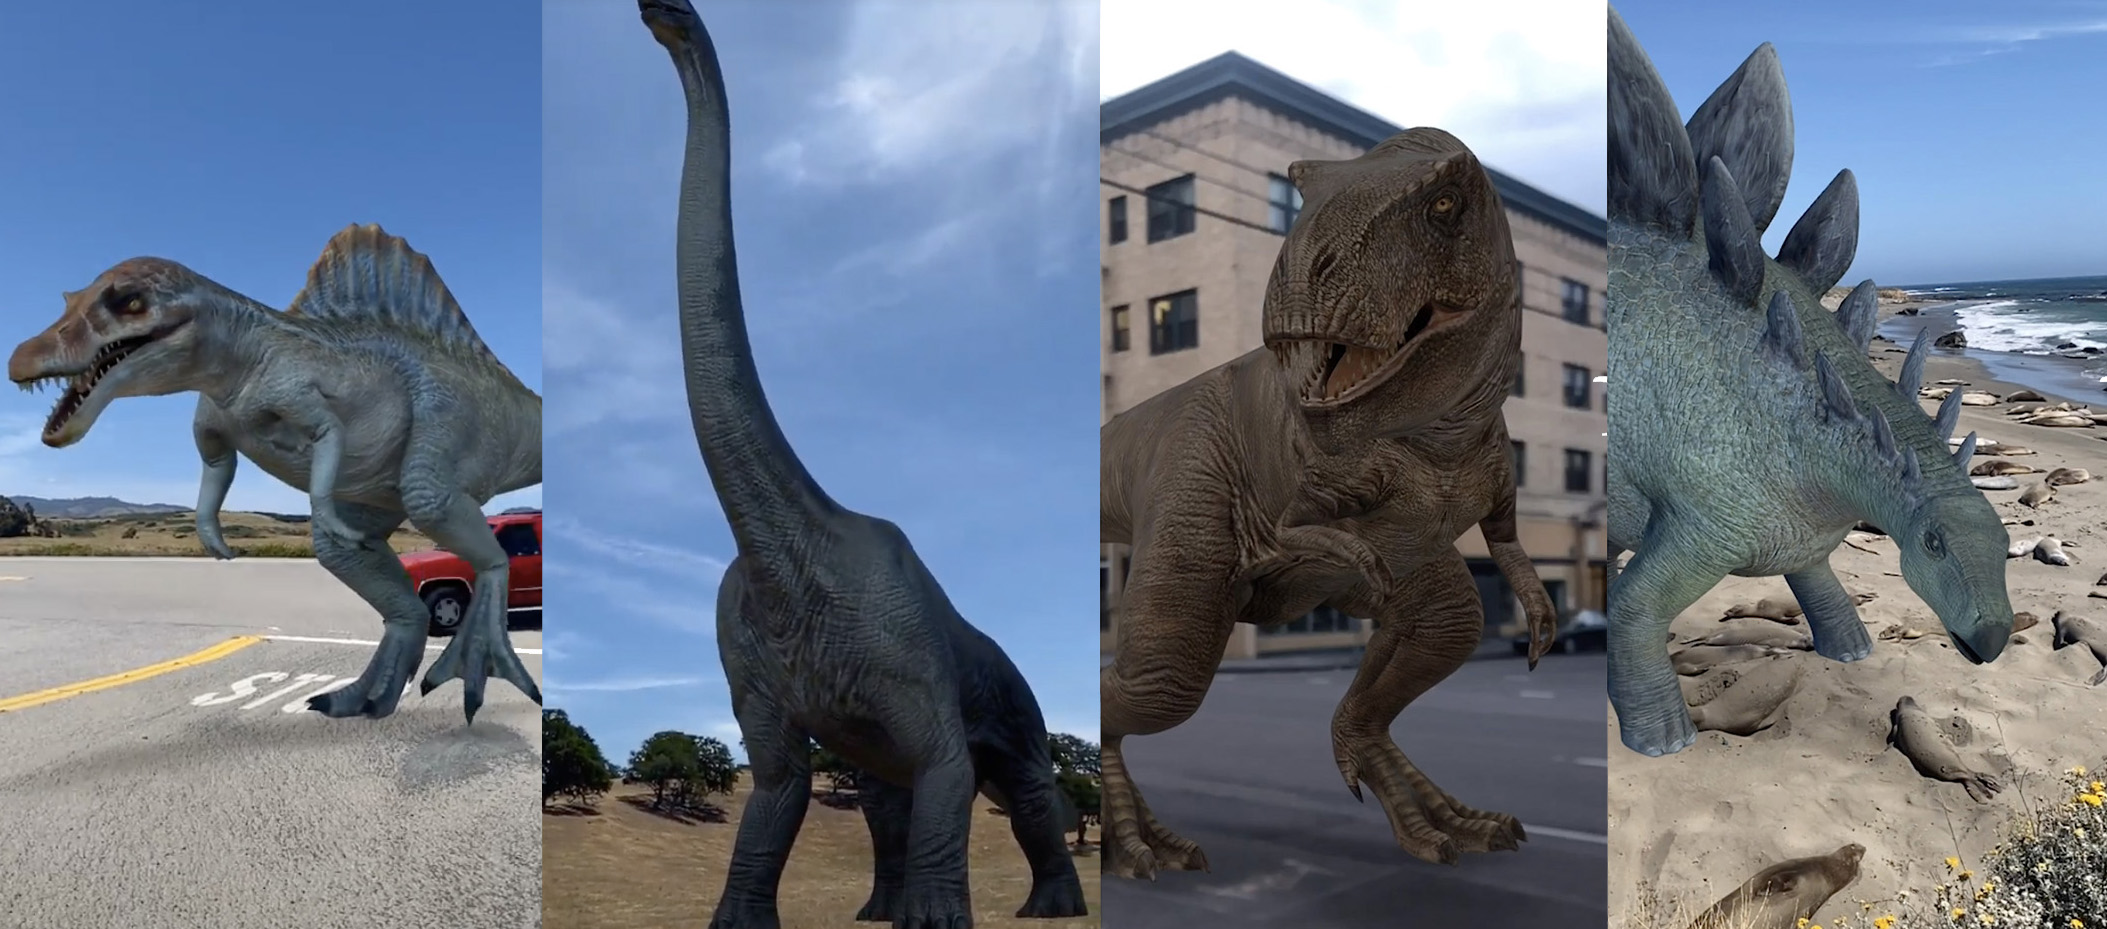 Google and Ludia Collaborate To Bring 'Jurassic World' AR Dinosaurs to Google Search